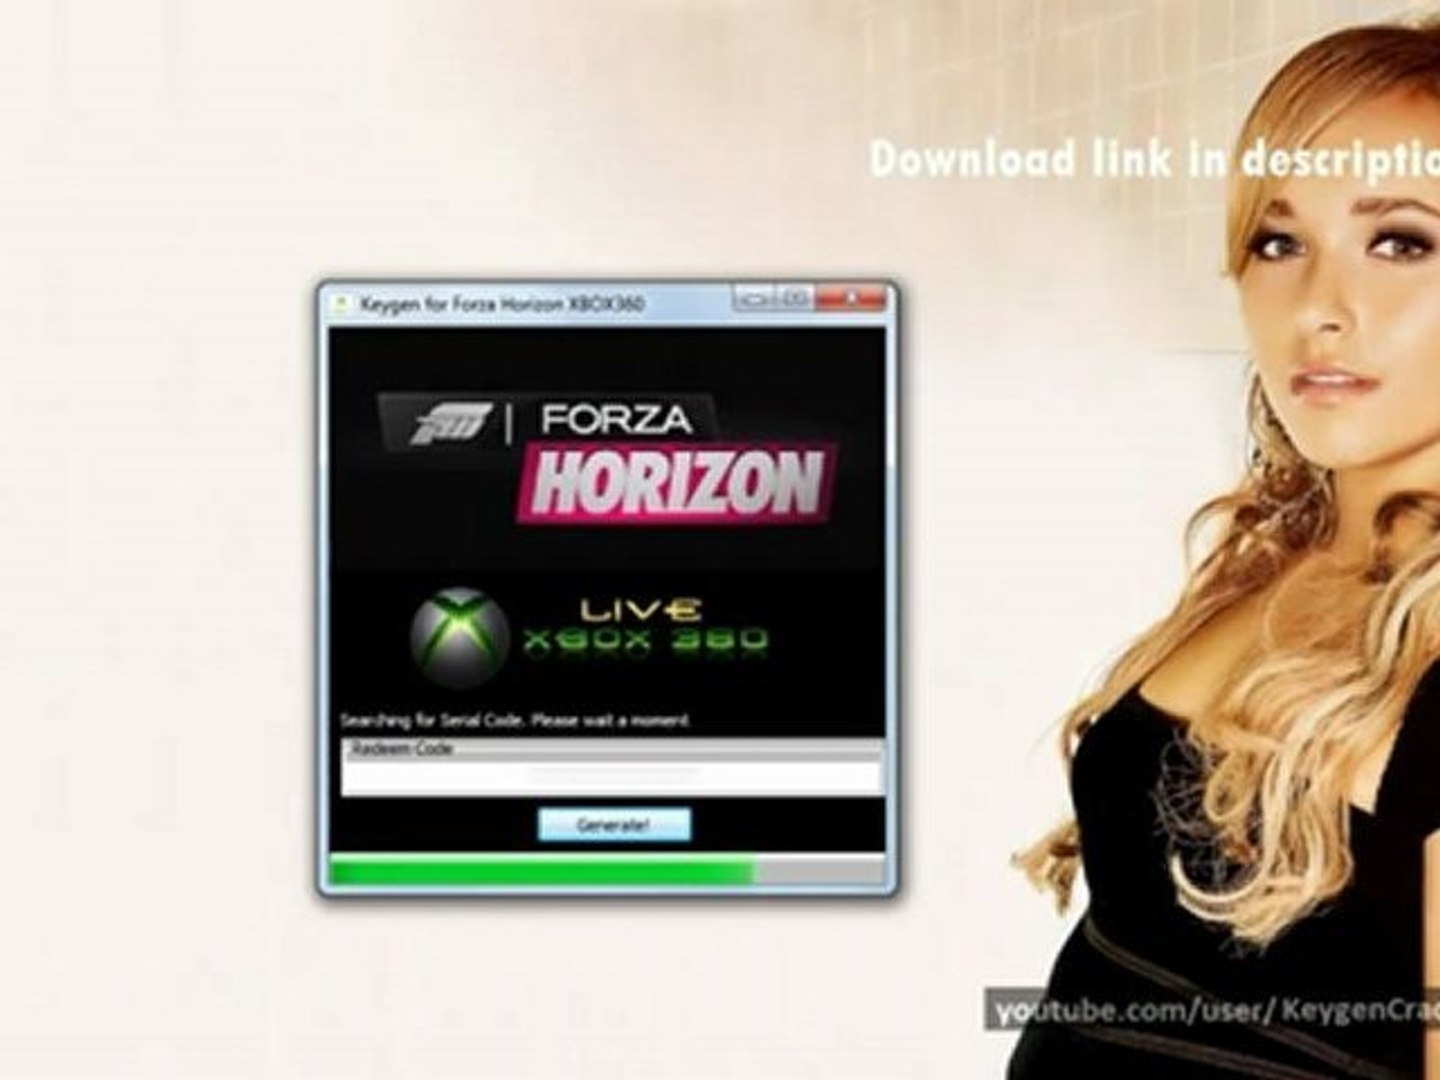 Forza Horizon Keygen - Redeem Key * FREE Download